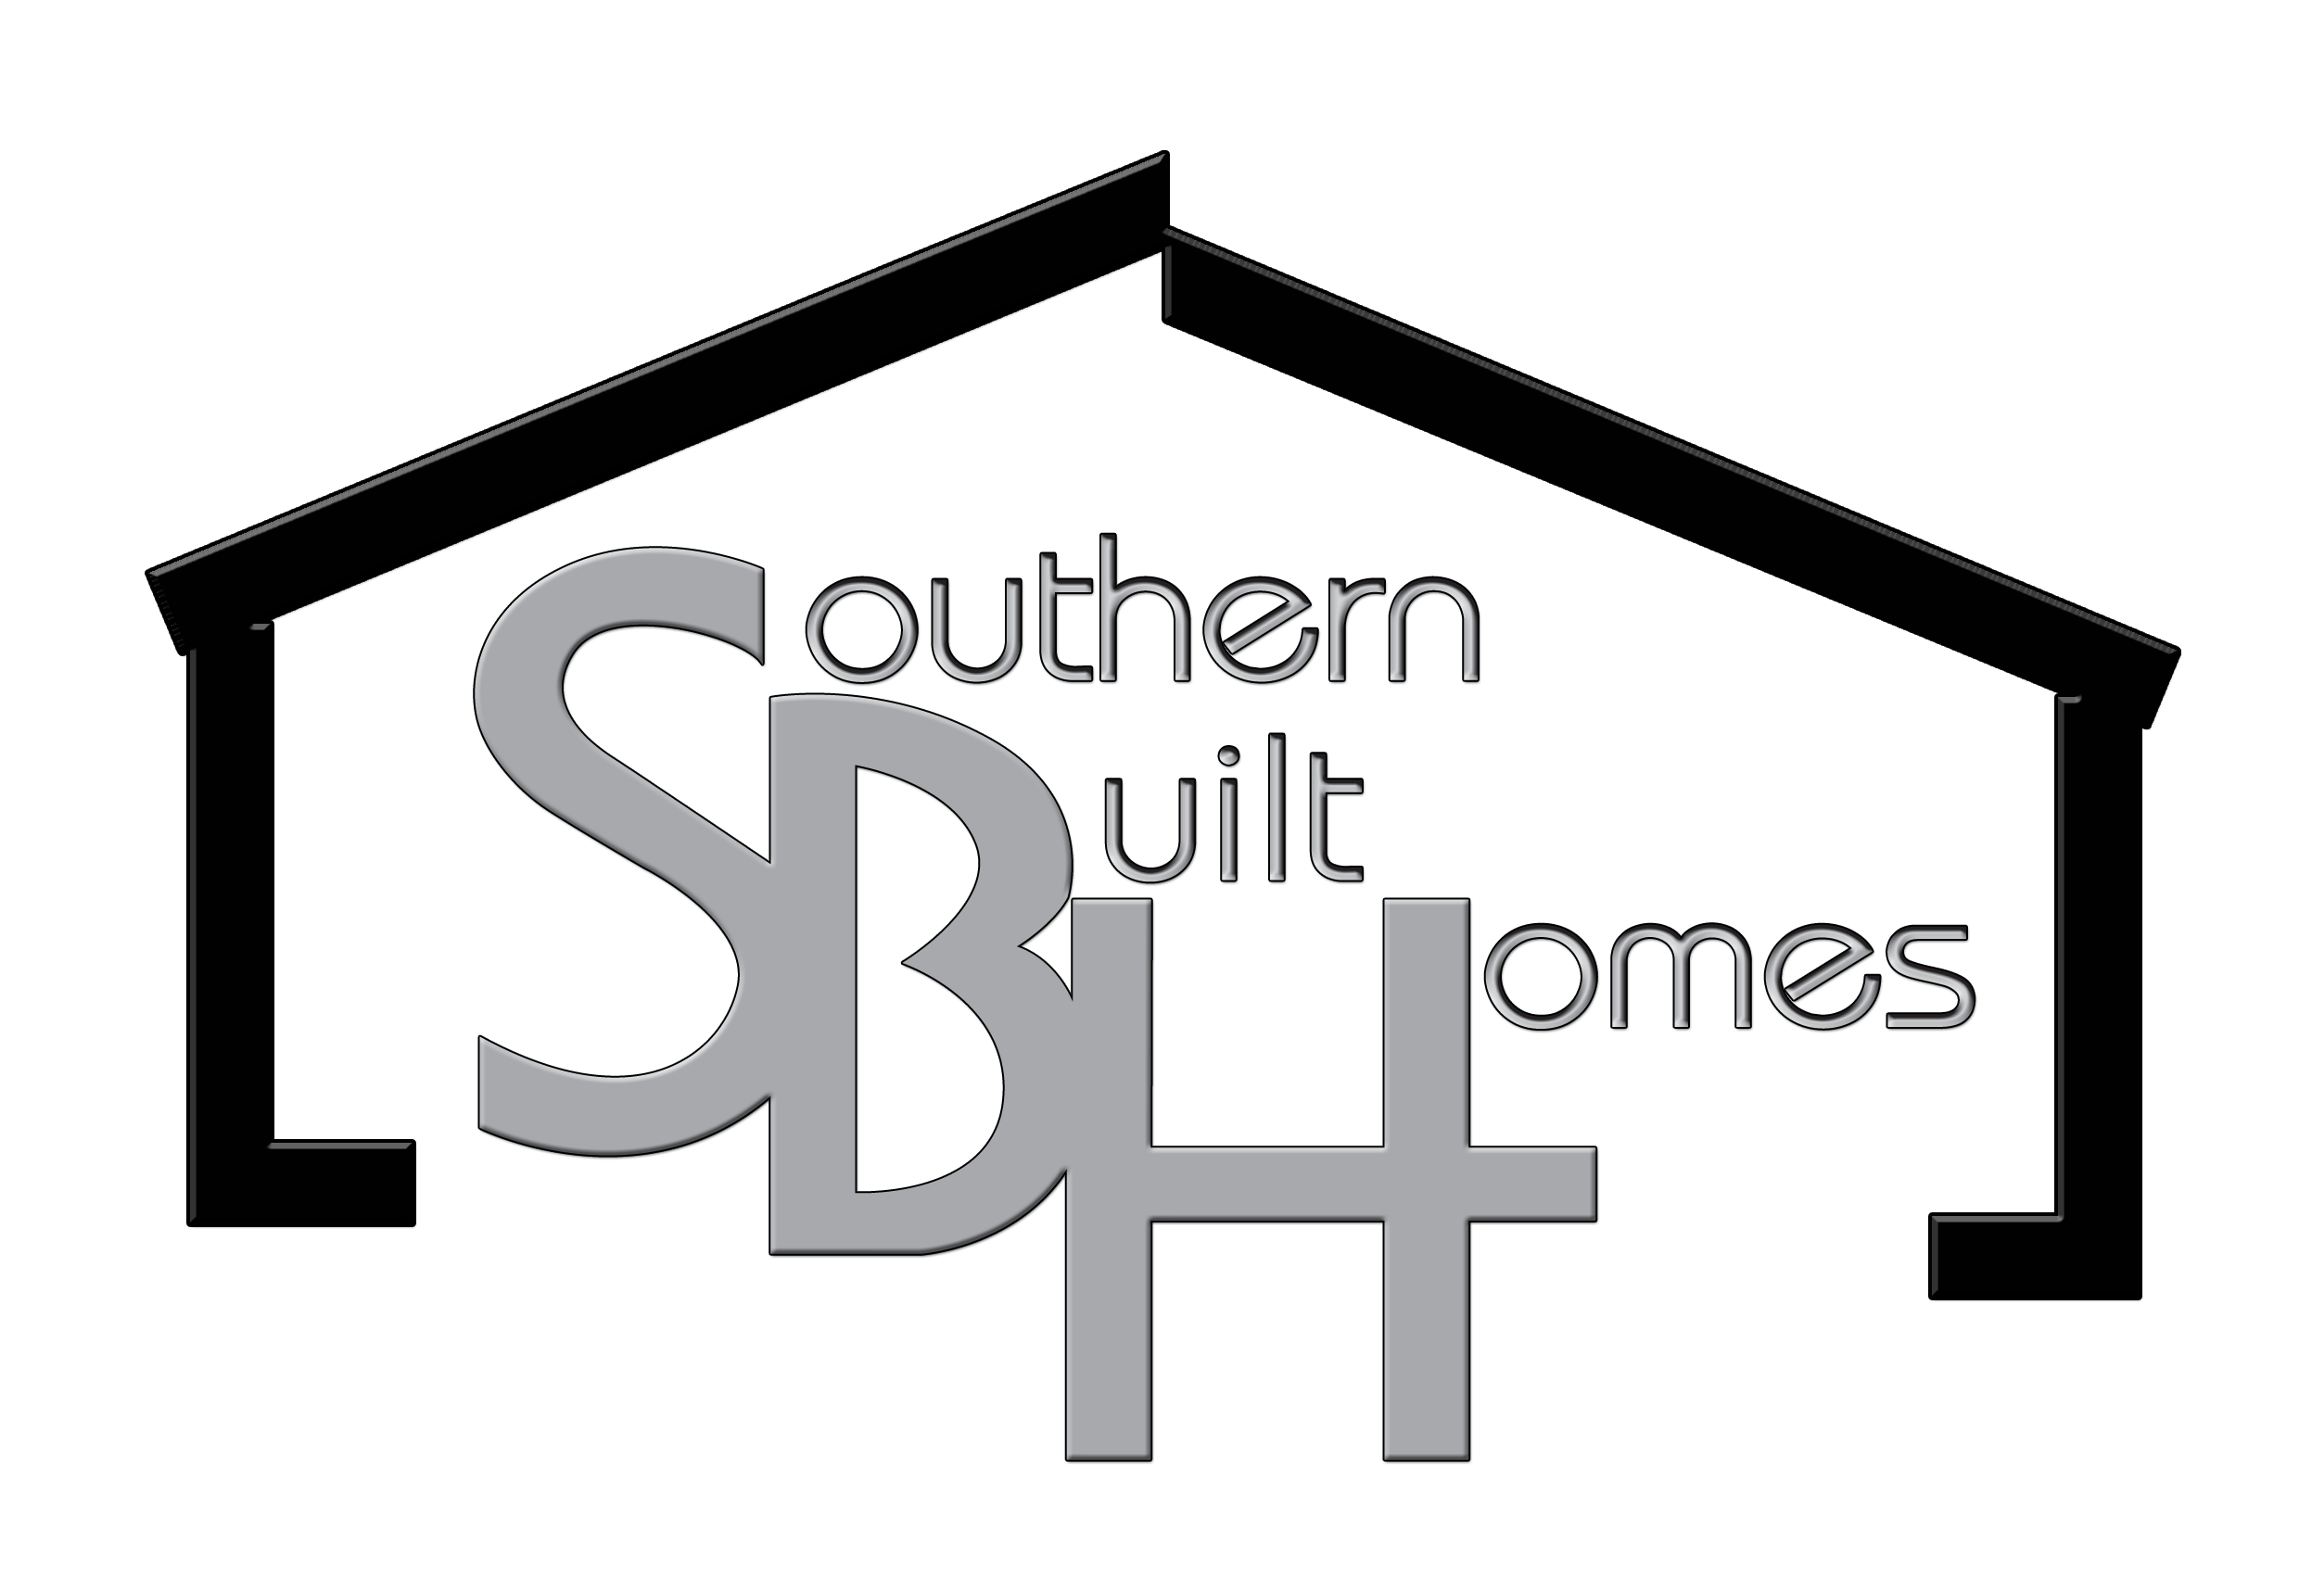 Southern.Built.Homes.Perth.Building.Company.